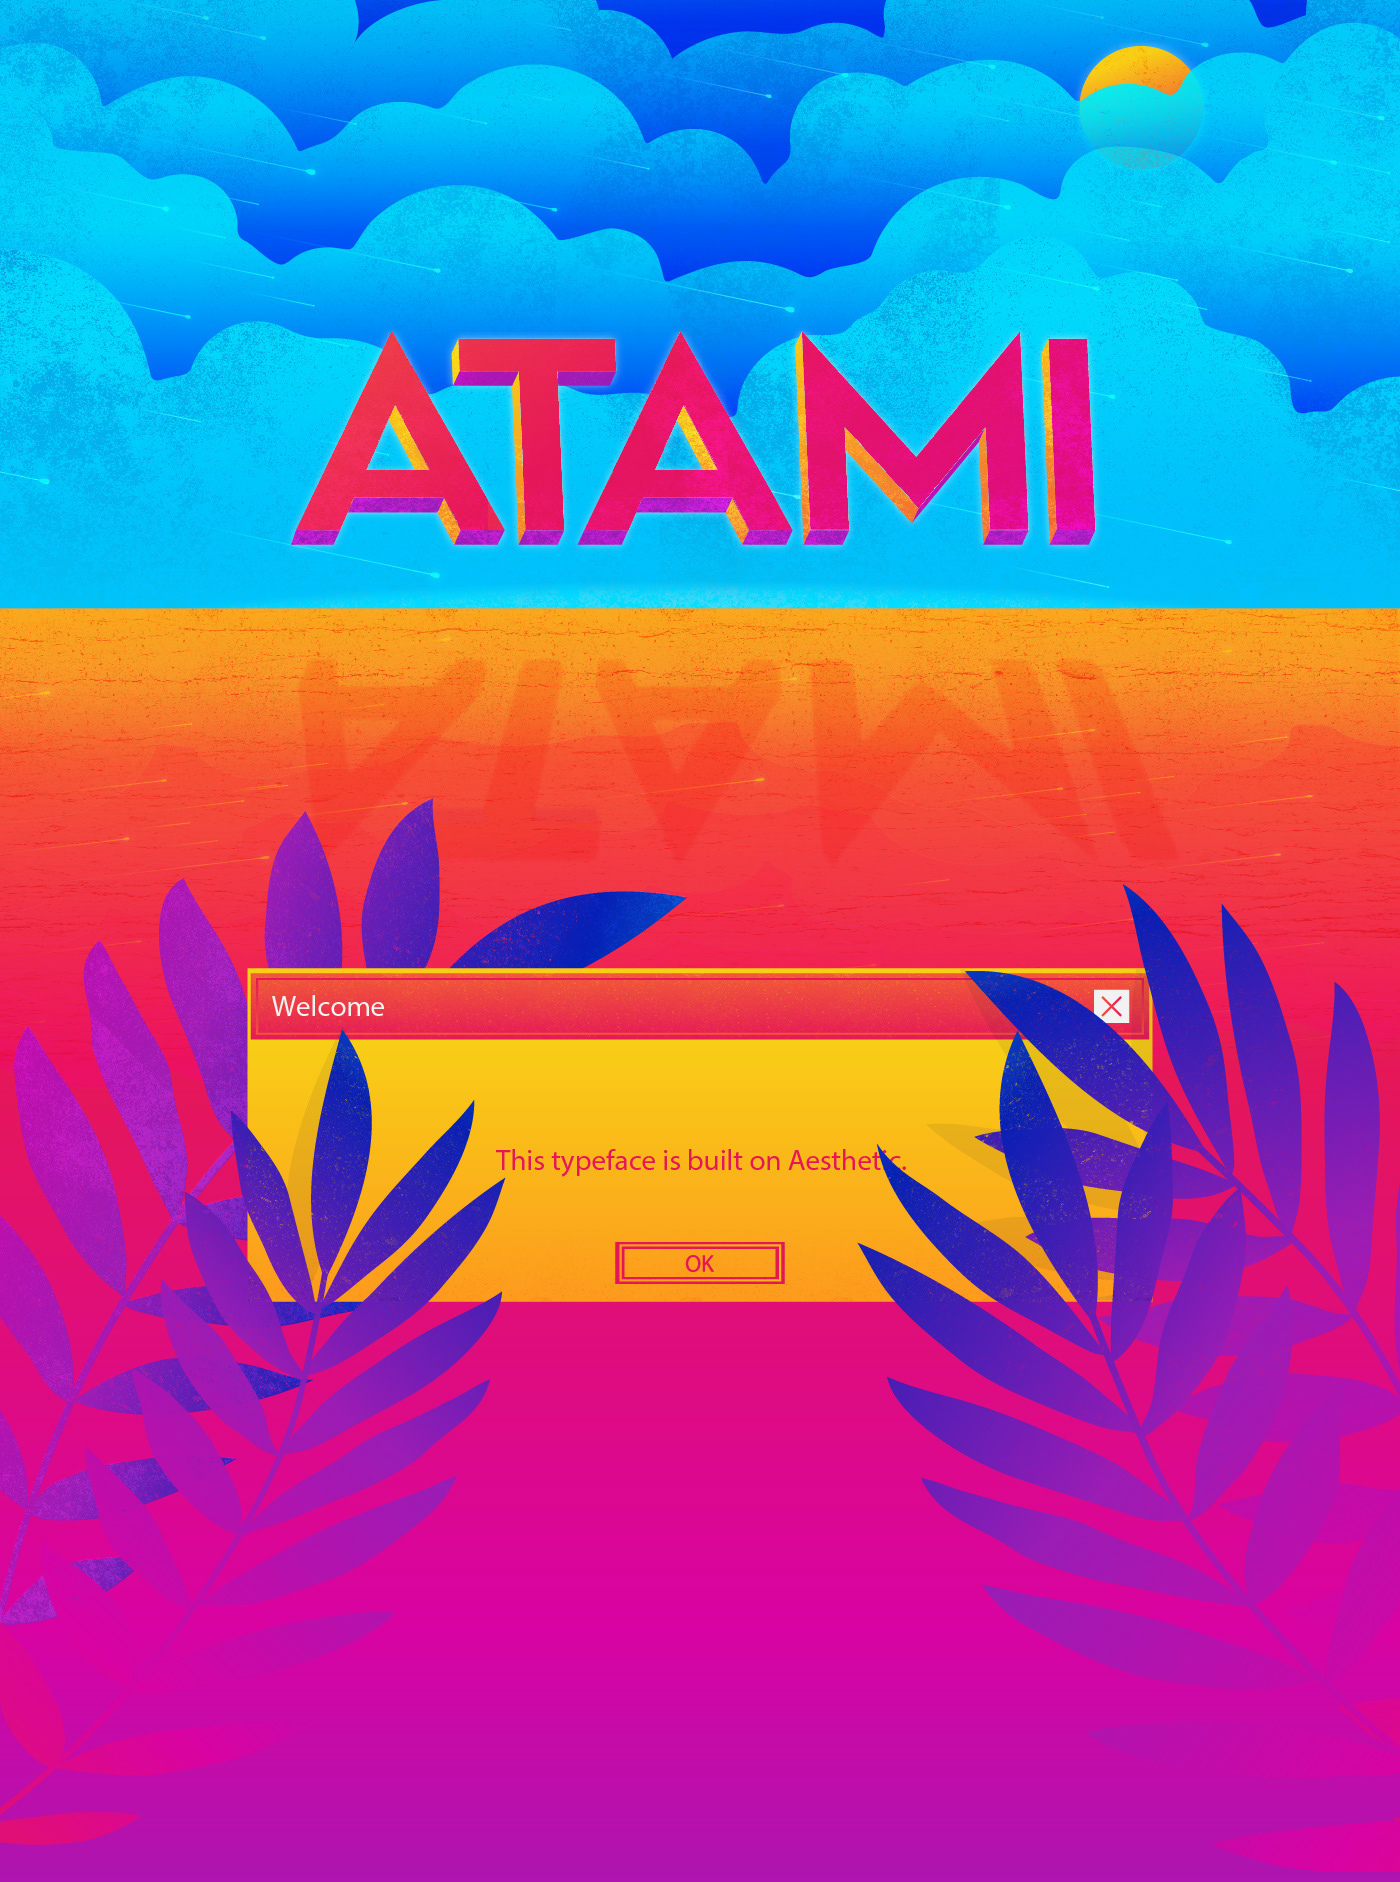 Atami - Free Typeface on Behance